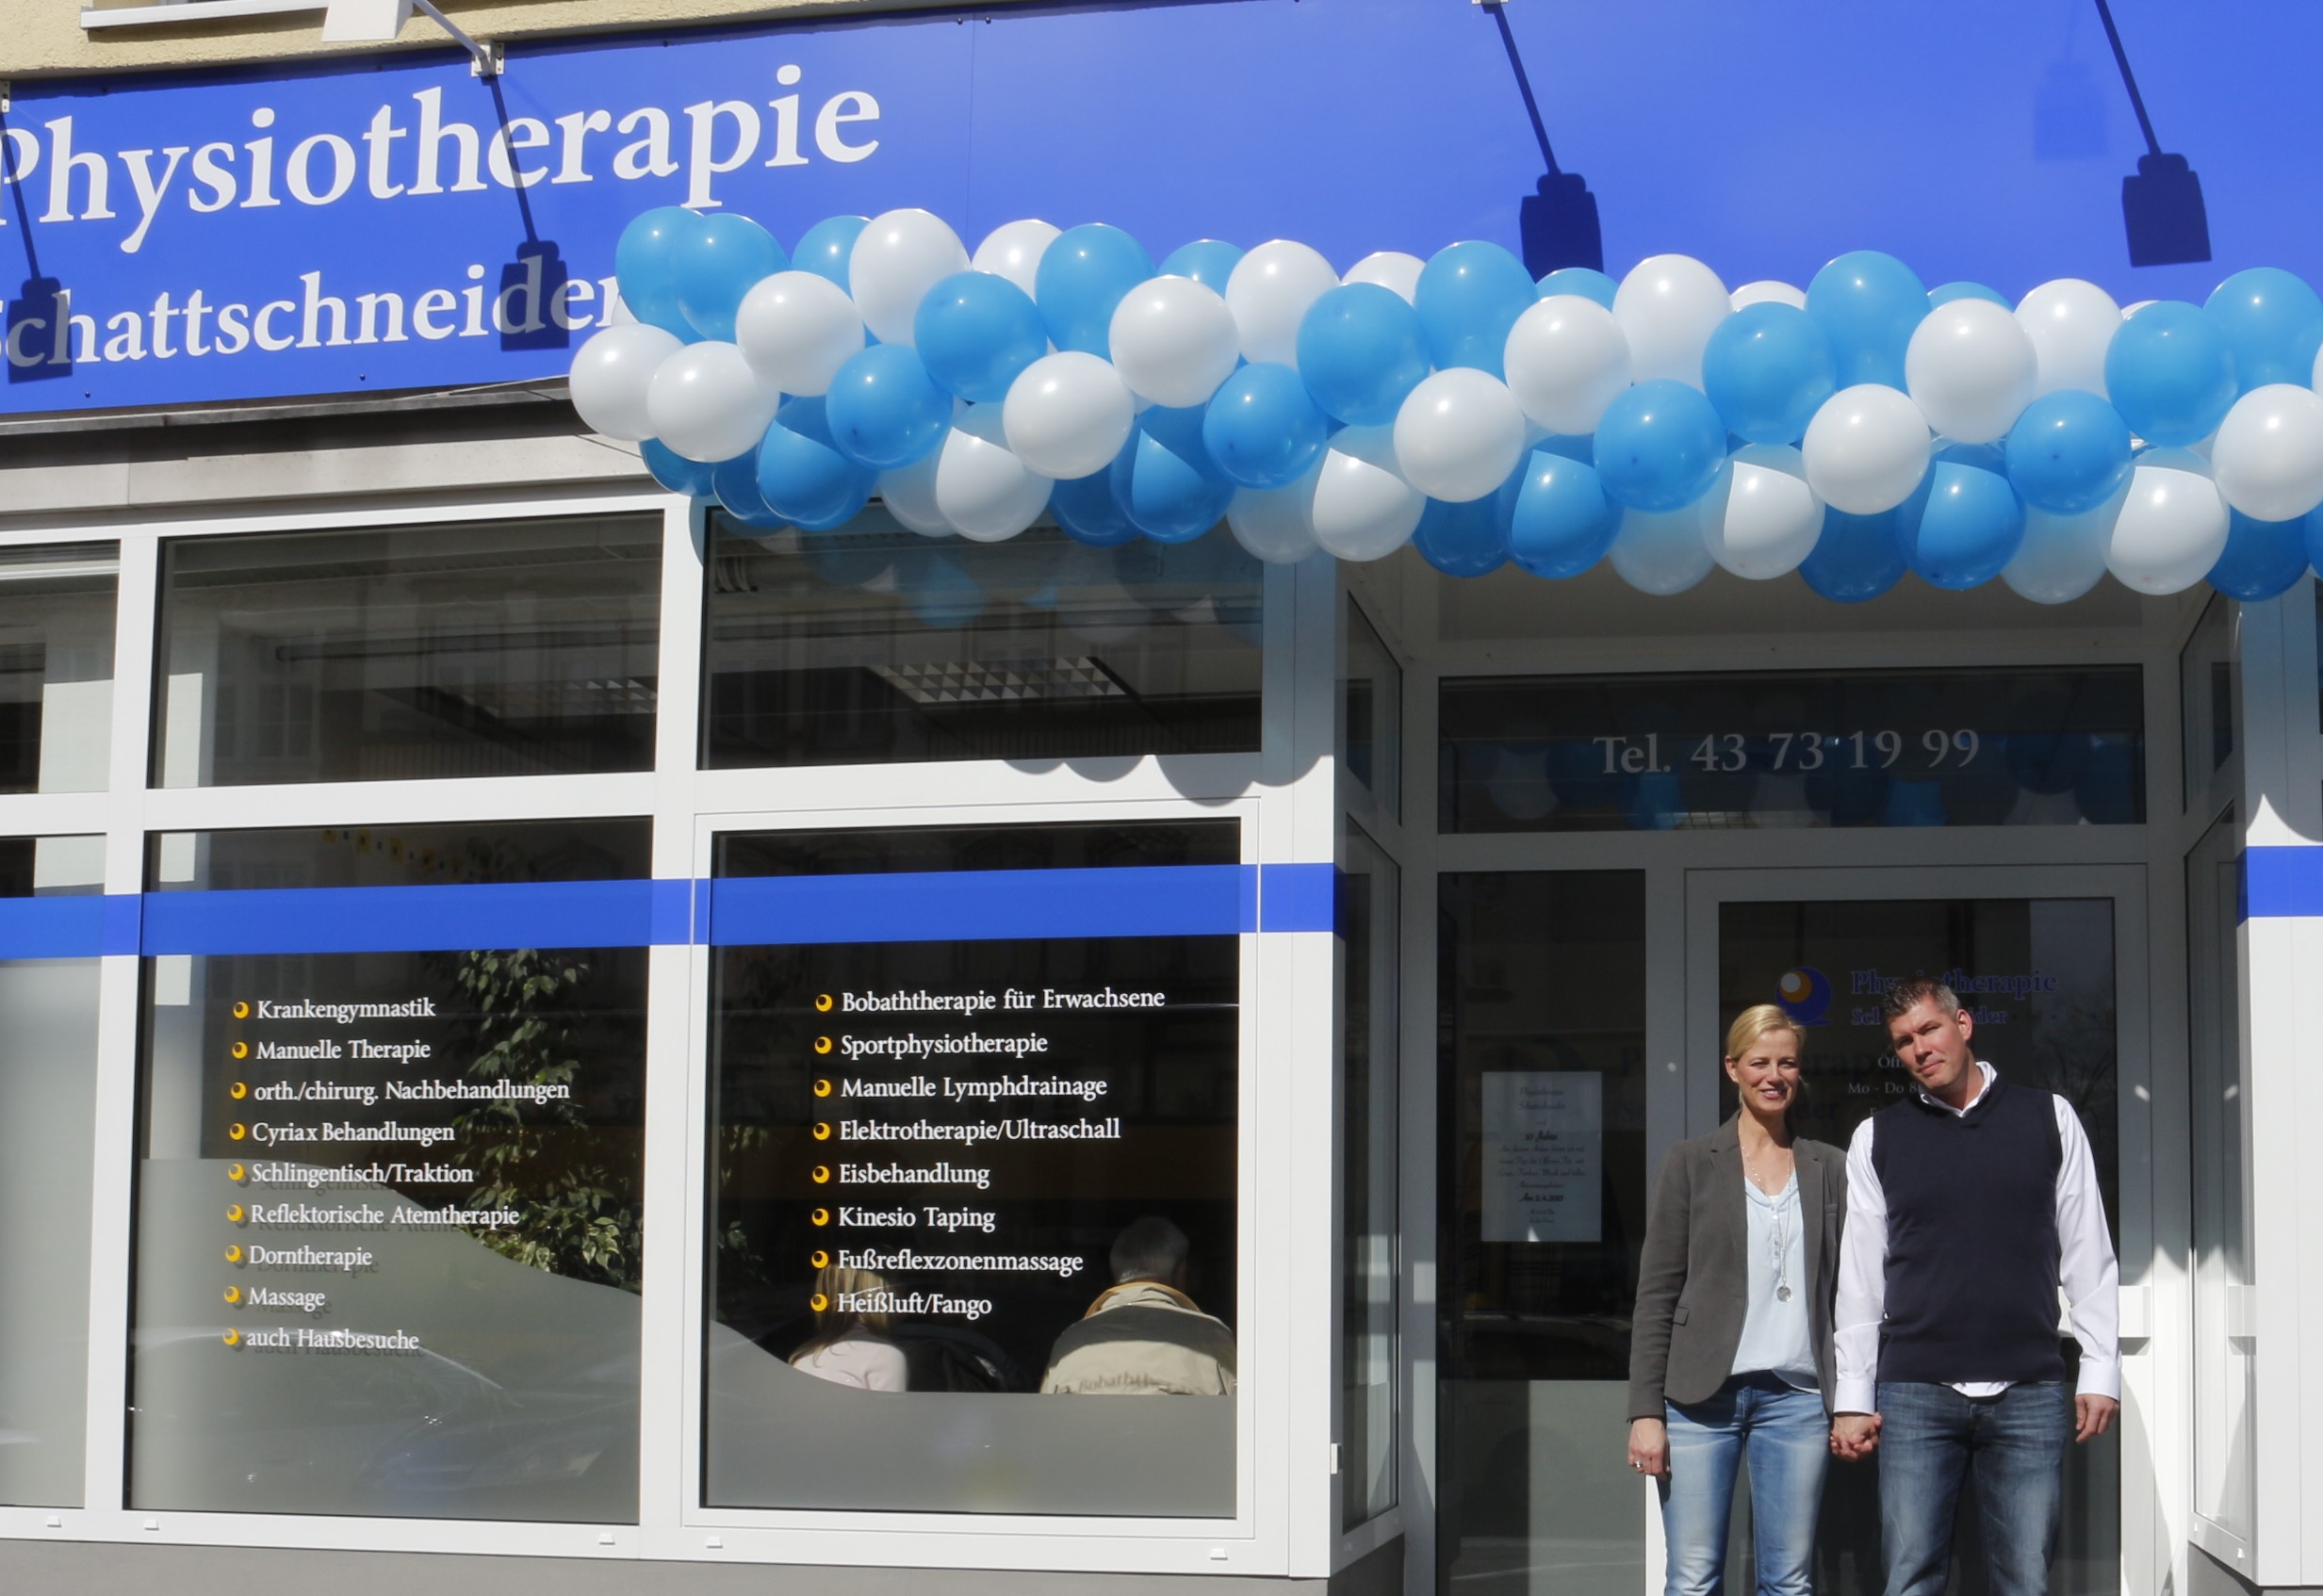 Physiotherapie Borsigwalde